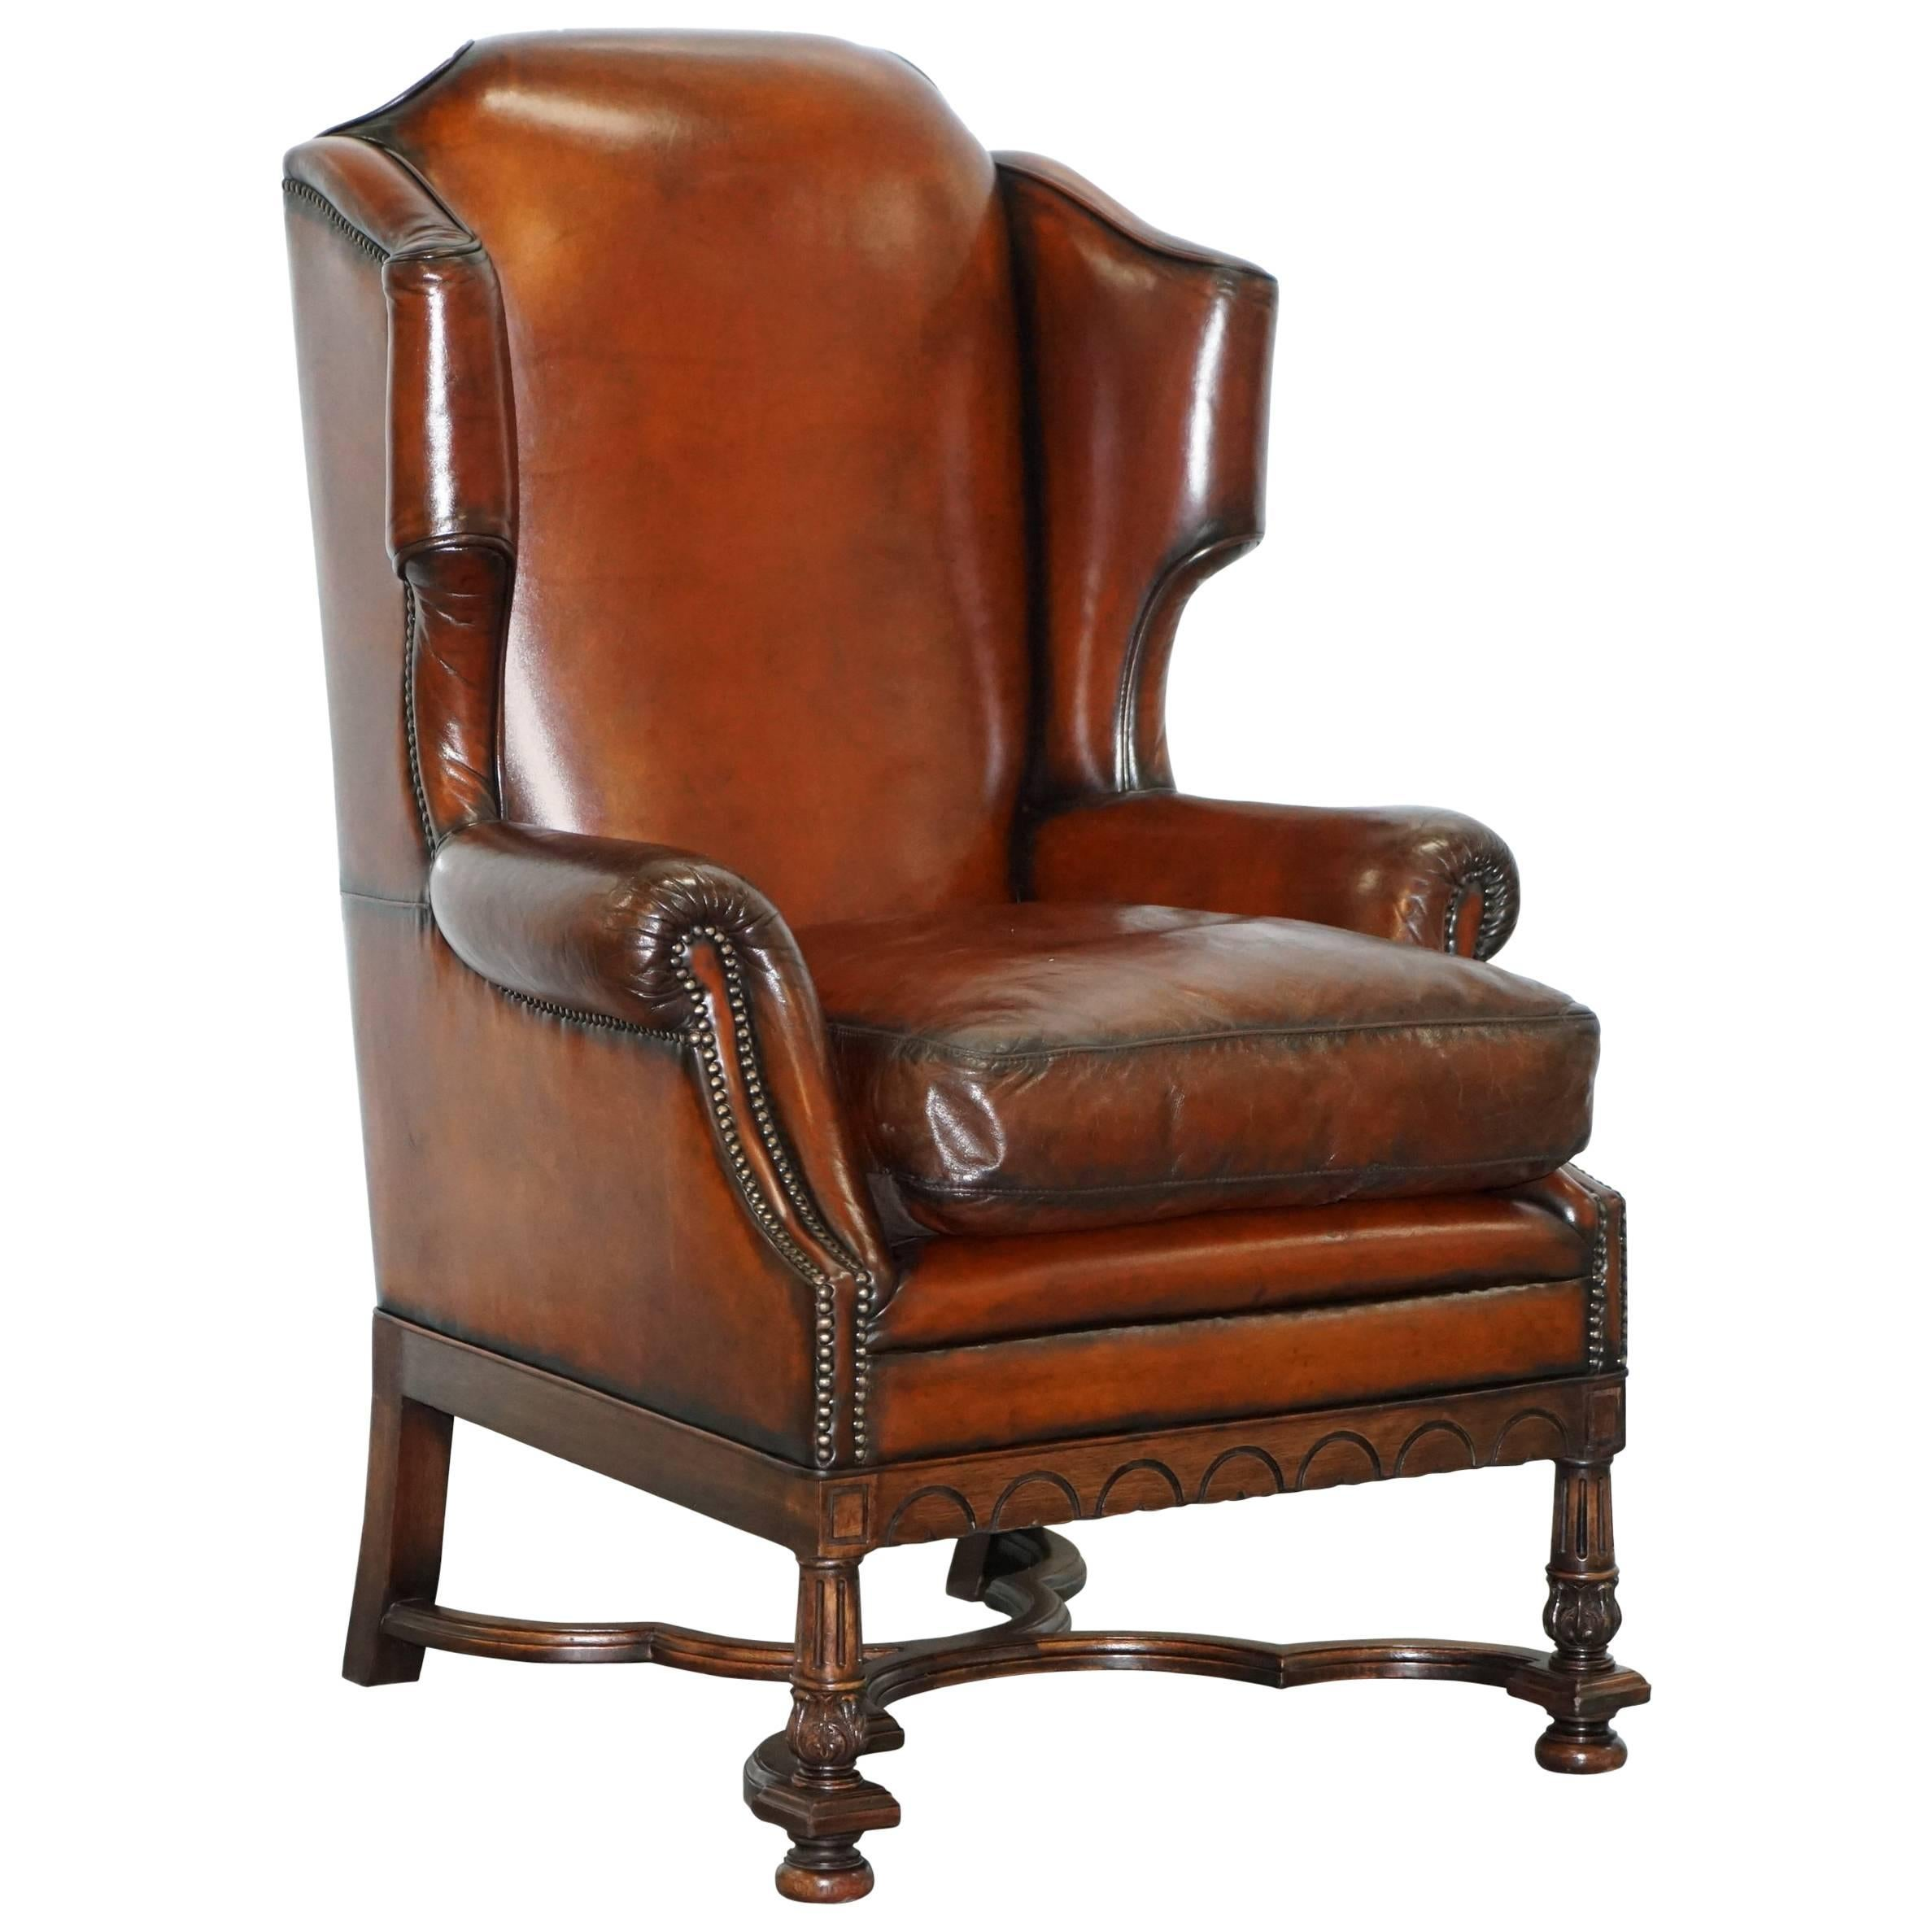 Rare William U0026 Mary Style Antique Victorian Wingback Brown Leather Armchair